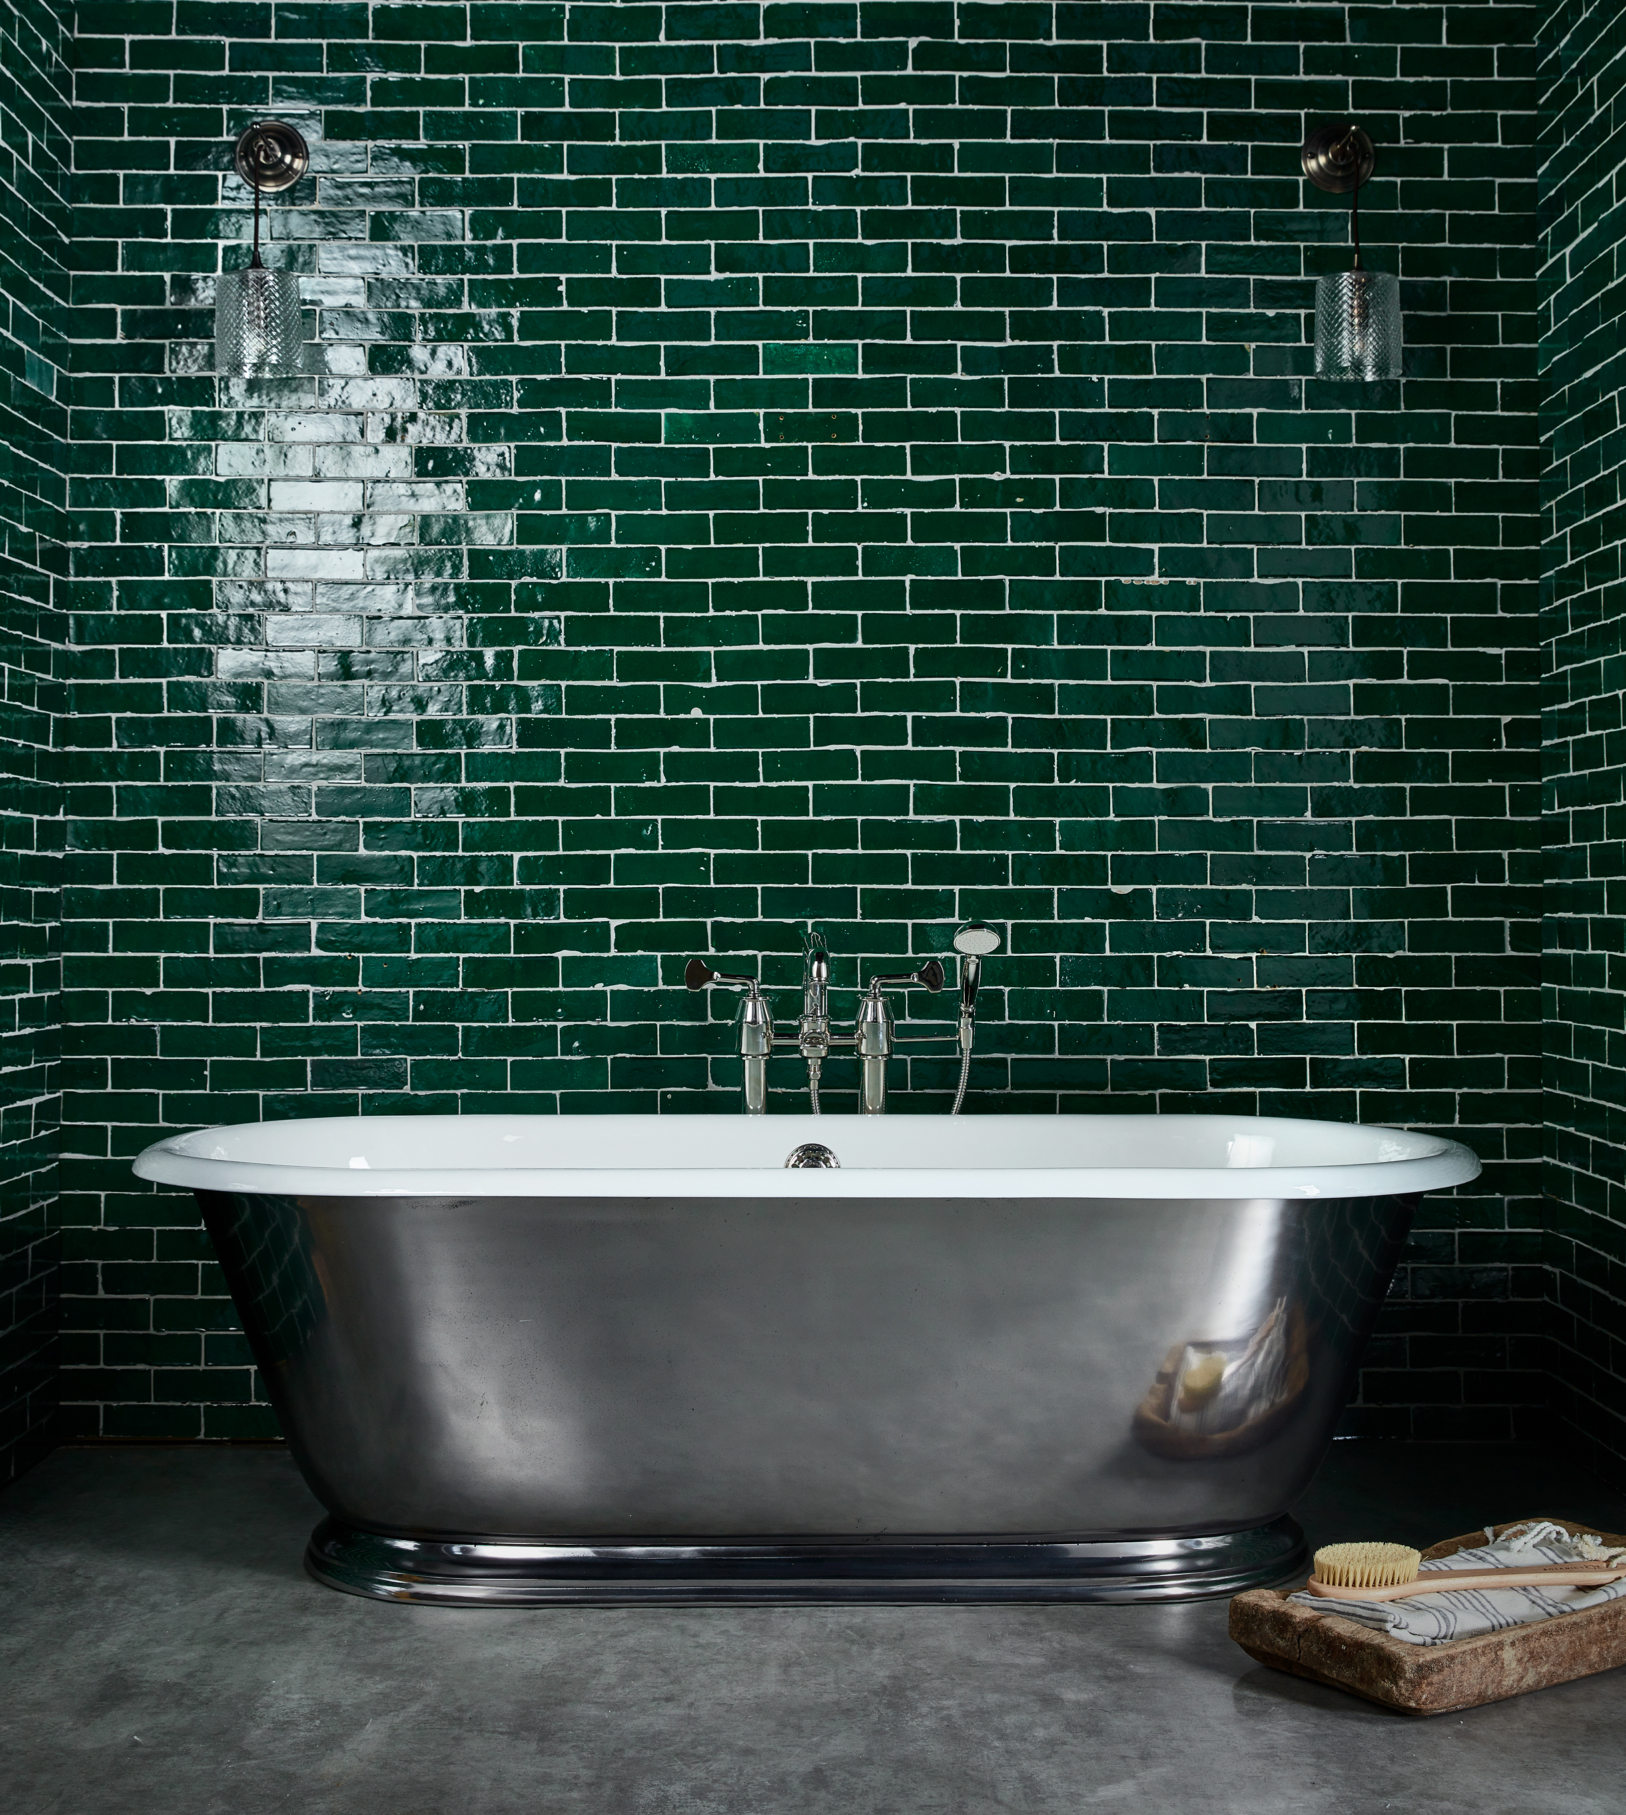 The Tamar Cast Iron Skirted Bath Tub